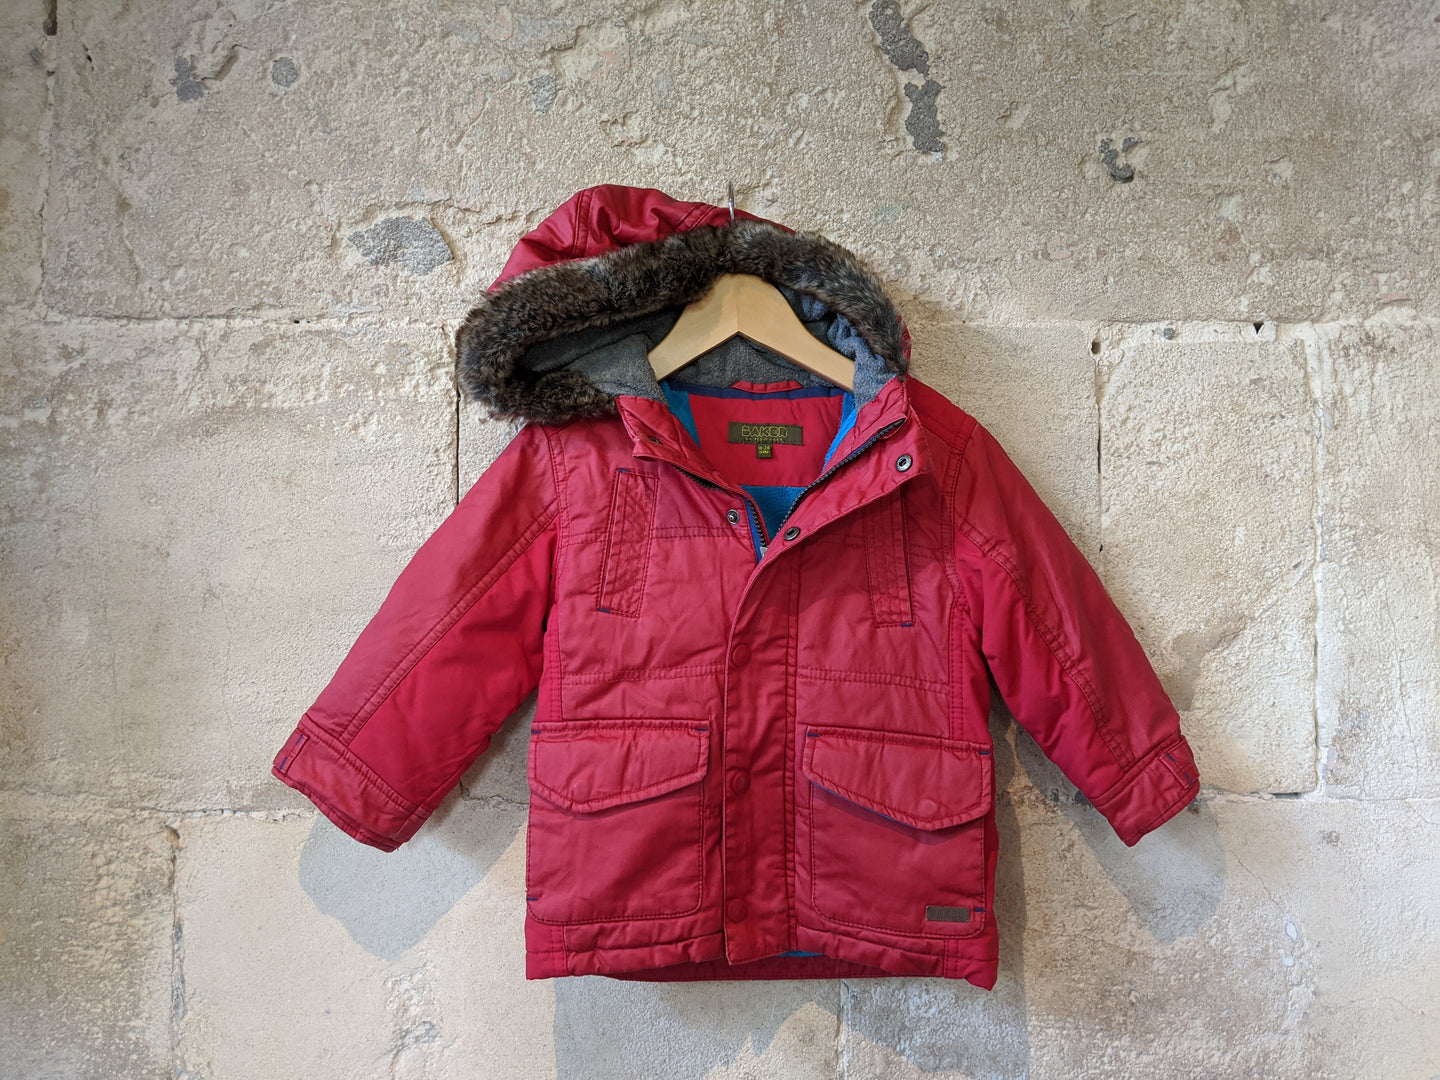 Ted Baker Warm & Bright Coat - 2 Years